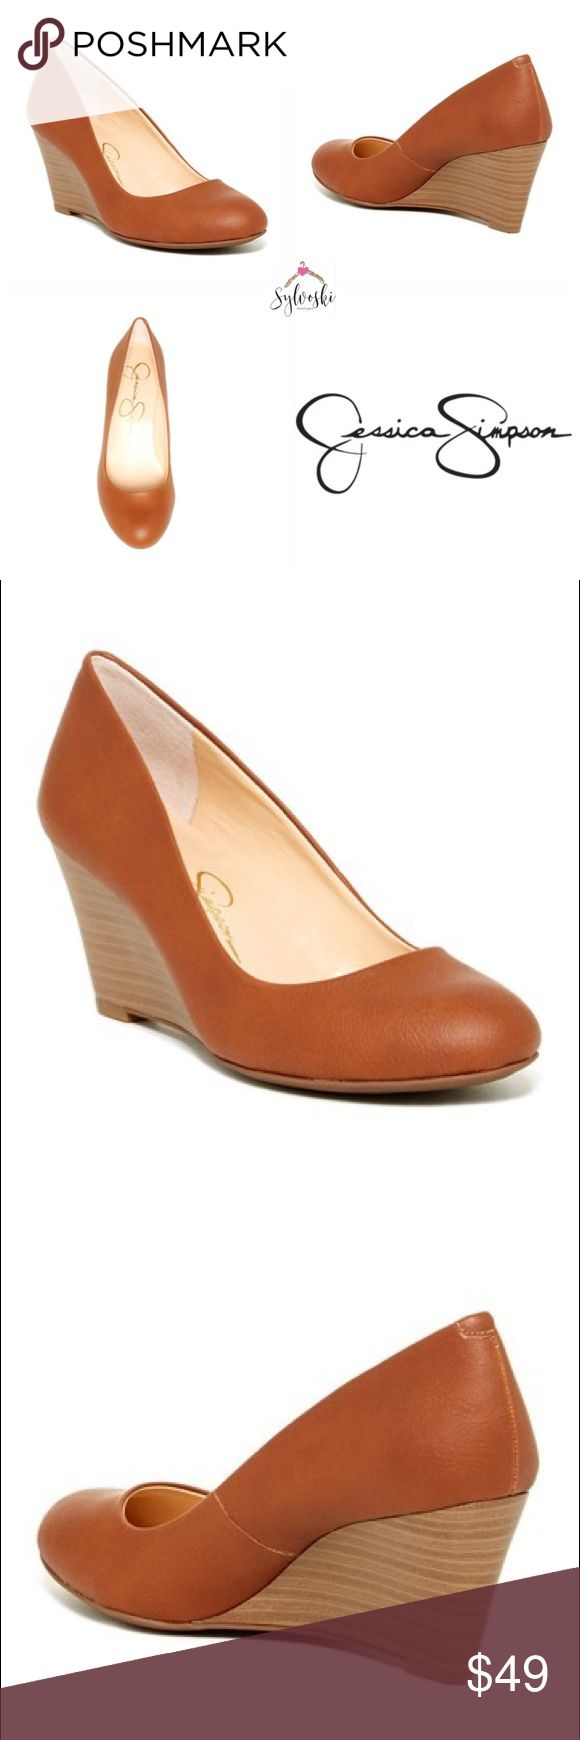 "🆕Jessica Simpson Sampson Wedge Pump A stacked wedge heel raises the bar on a classic round toe, faux leather silhouette.  Sizing: True to size. M=standard width  - Round toe - Slip-on - Lightly padded insole - Wedge heel - Approx. 3"" heel - Imported Materials Manmade upper and sole Jessica Simpson Shoes Wedges"